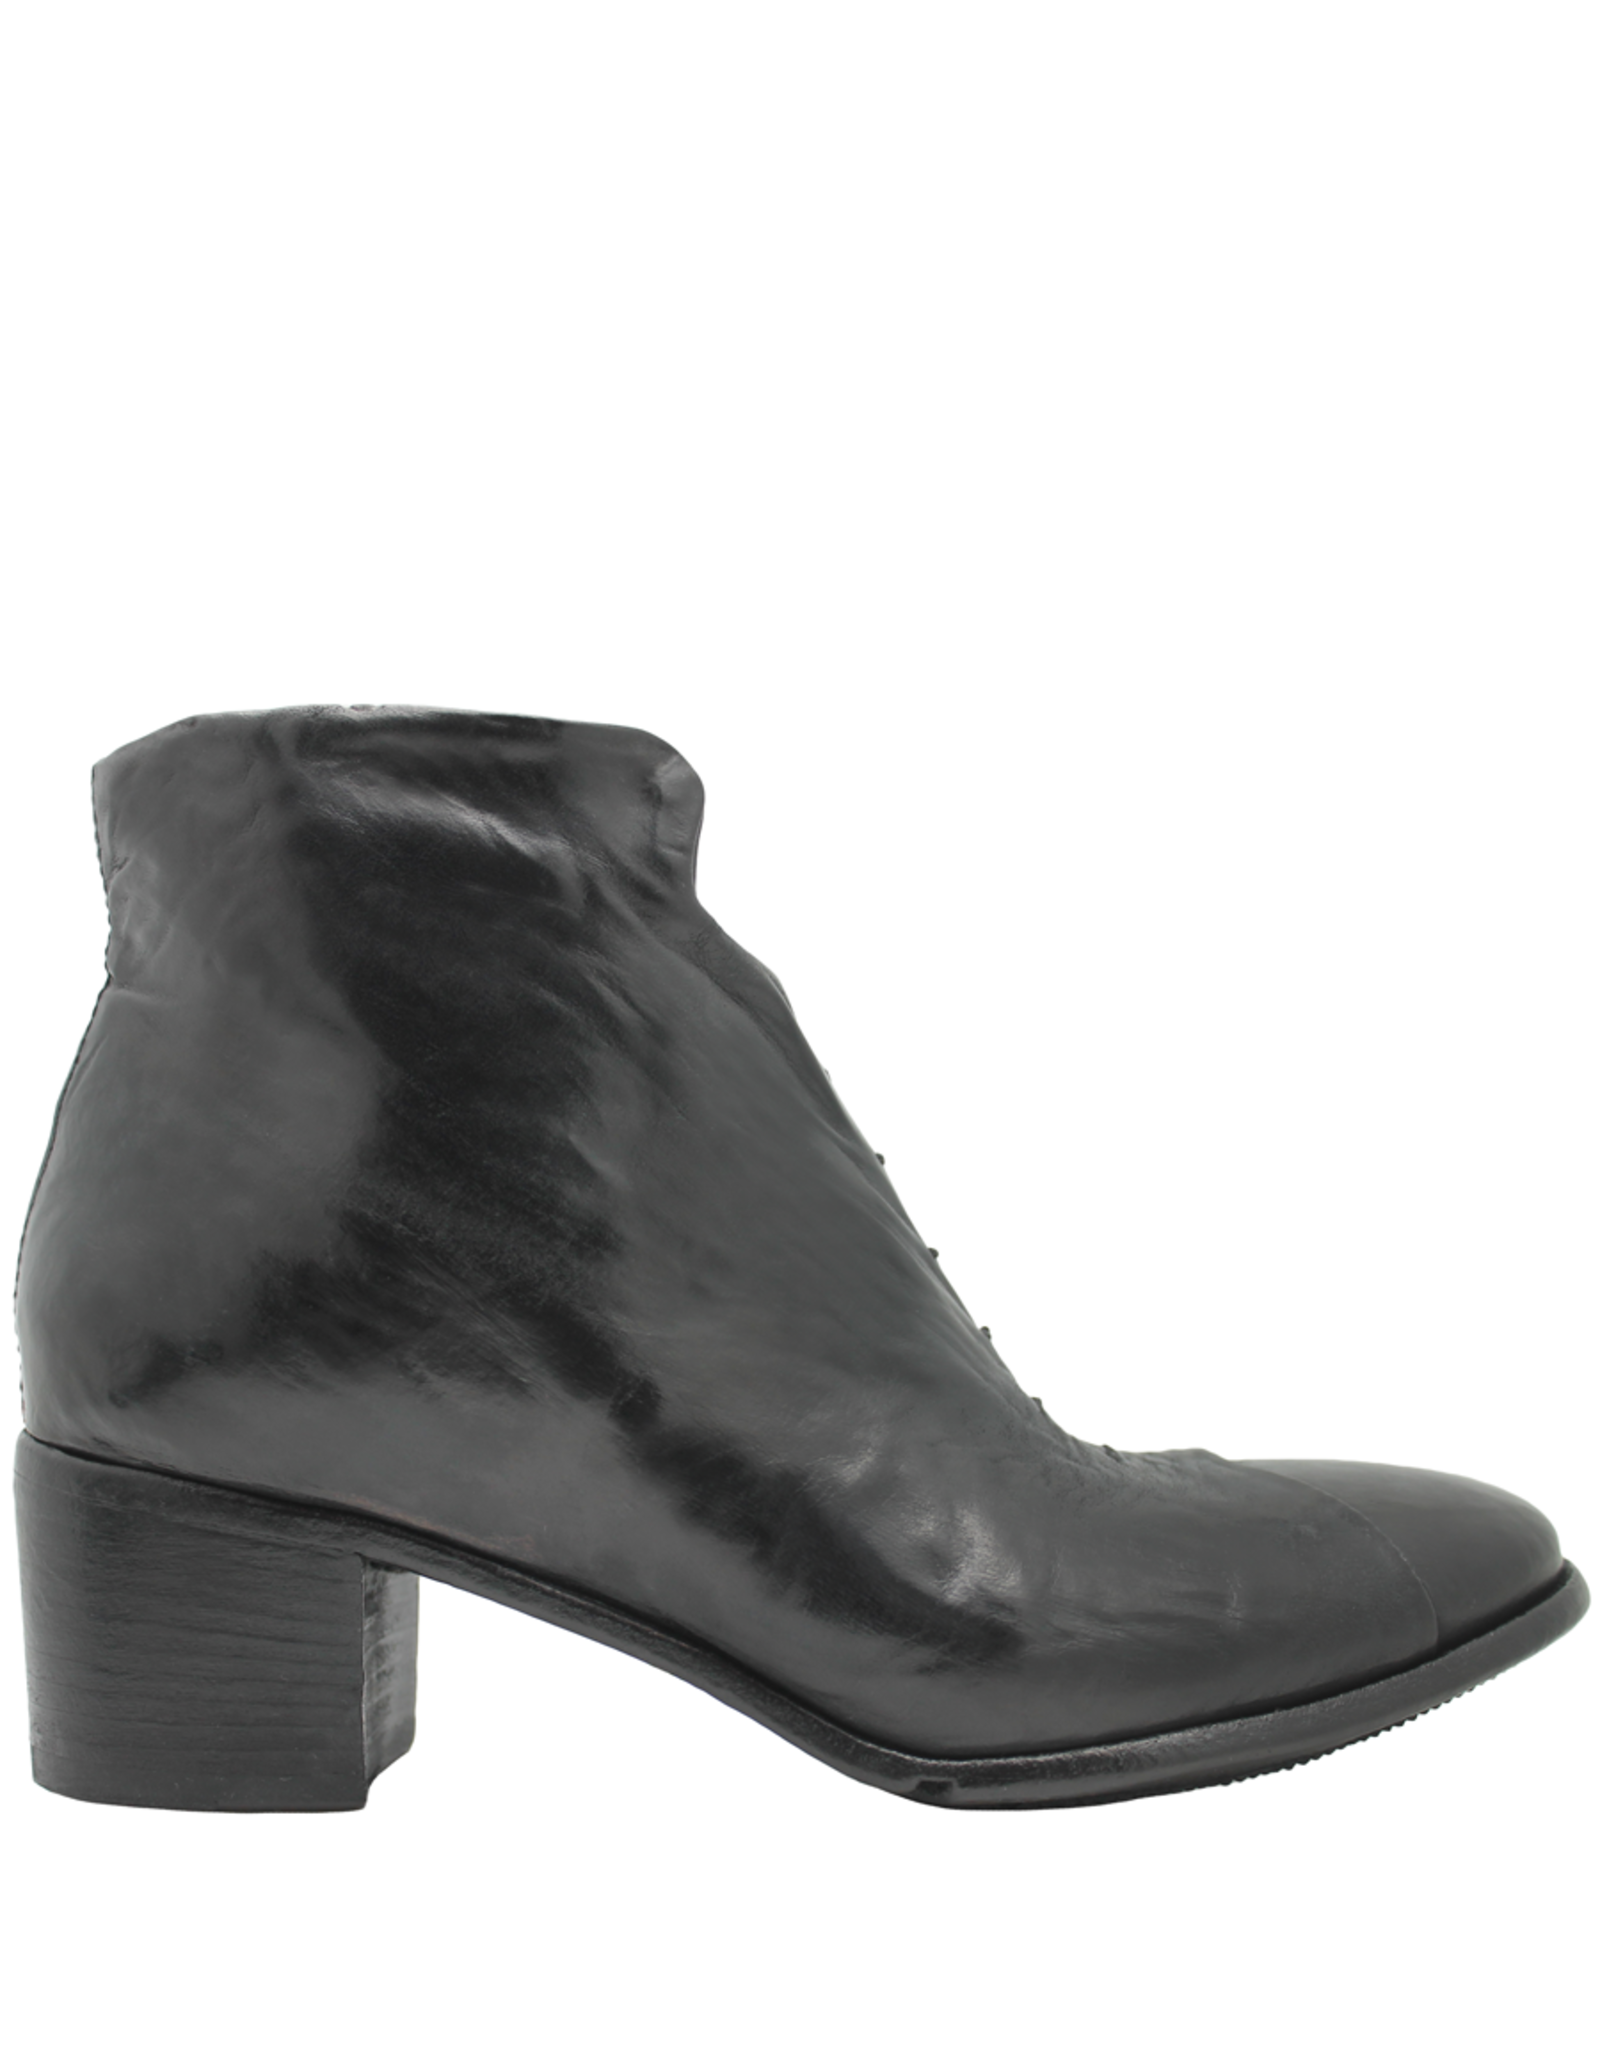 LeMargo LeMargo Black Ankle Boot Hidden Lace Detail 2288